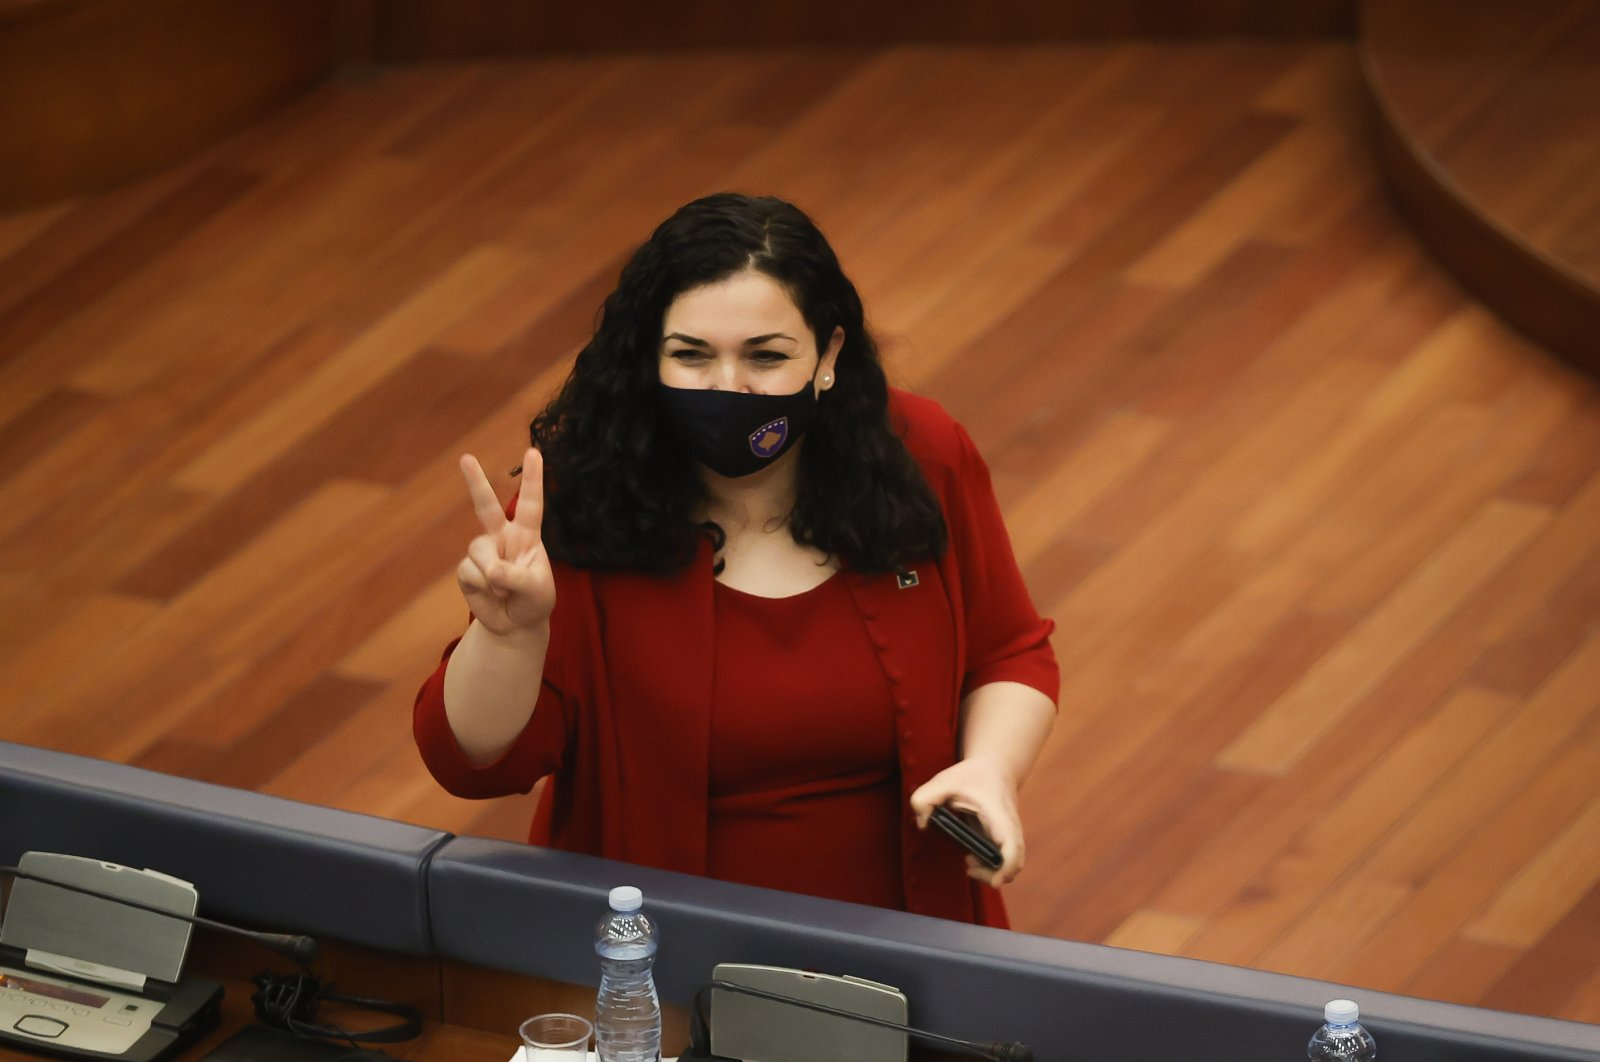 Vjosa Osmani candidate for the President of the Republic of Kosovo flashes victory sign during a parliament session to elect the new president in Pristina, Kosovo, April 3, 2021. (EPA Photo)